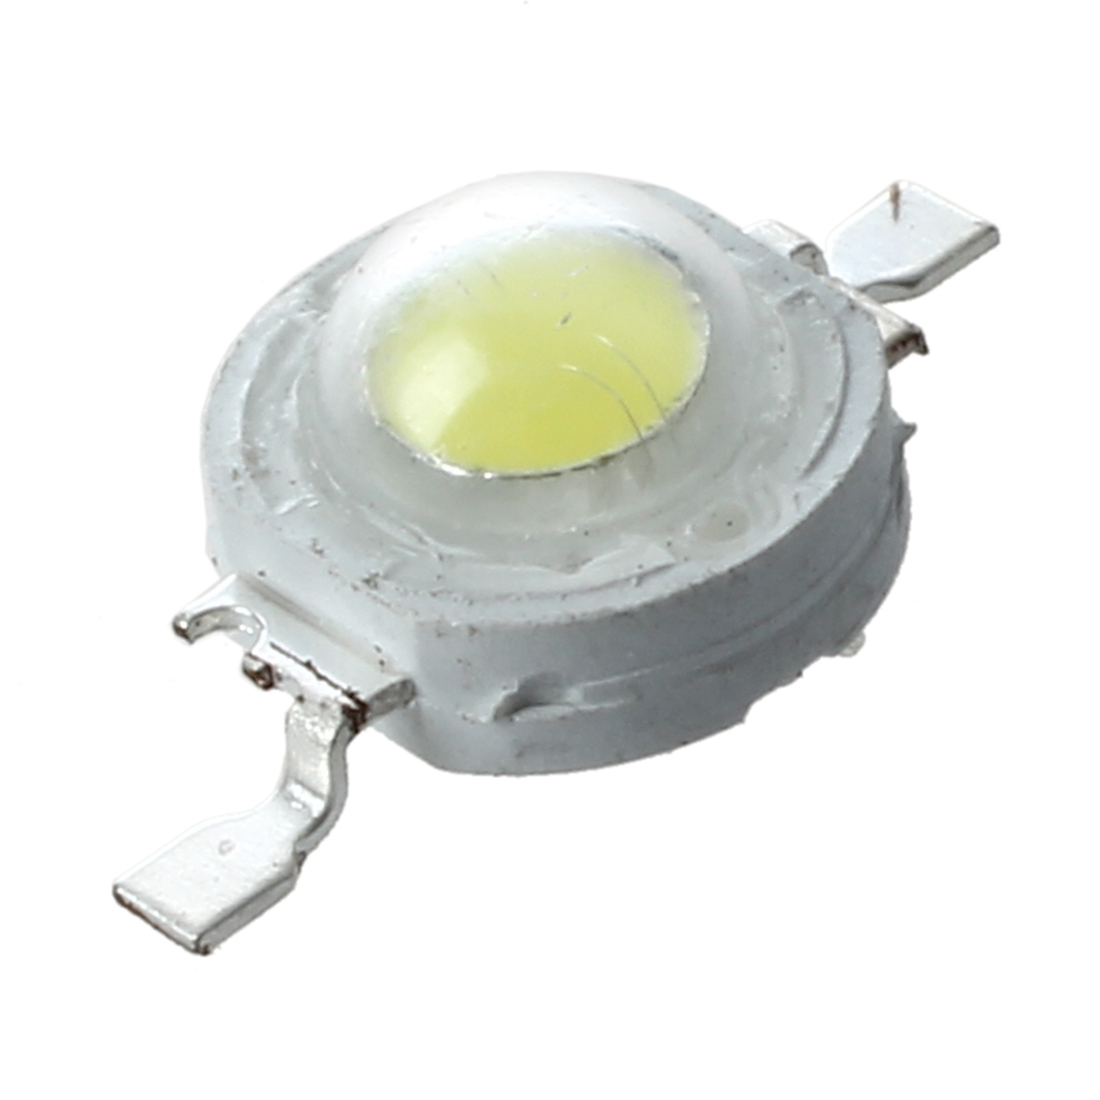 20 X 1W Super Bright High Power White LED Lamp Light